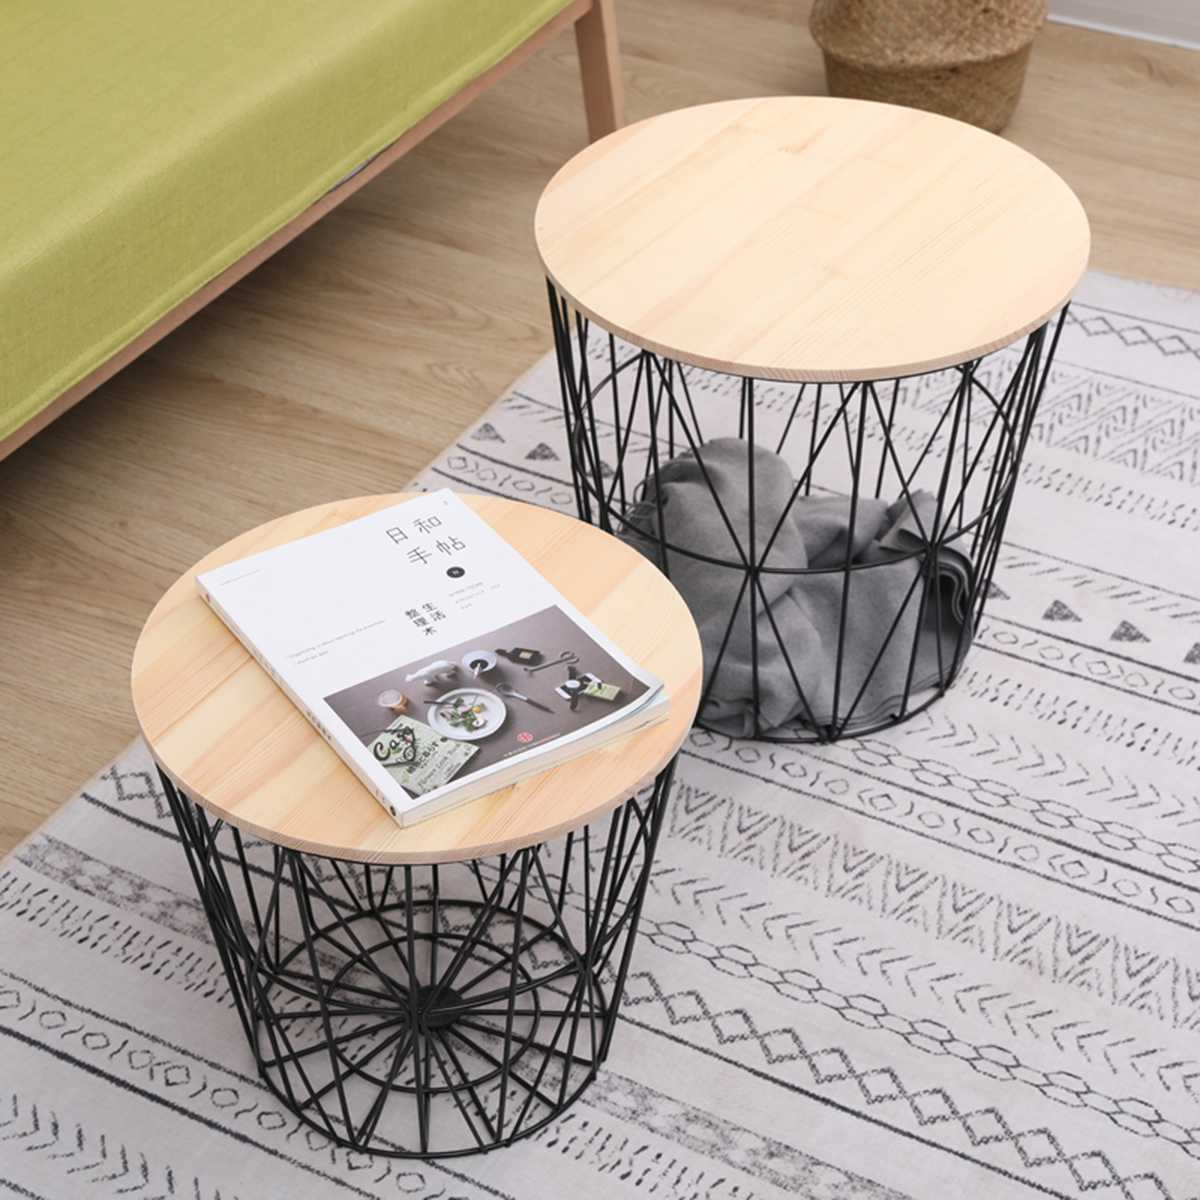 Nordic White Black Iron Metal Coffee Table Dirty Storage Basket With Wooden Top Tea Fruit Snack Plate Tray Living Room Sofa Side